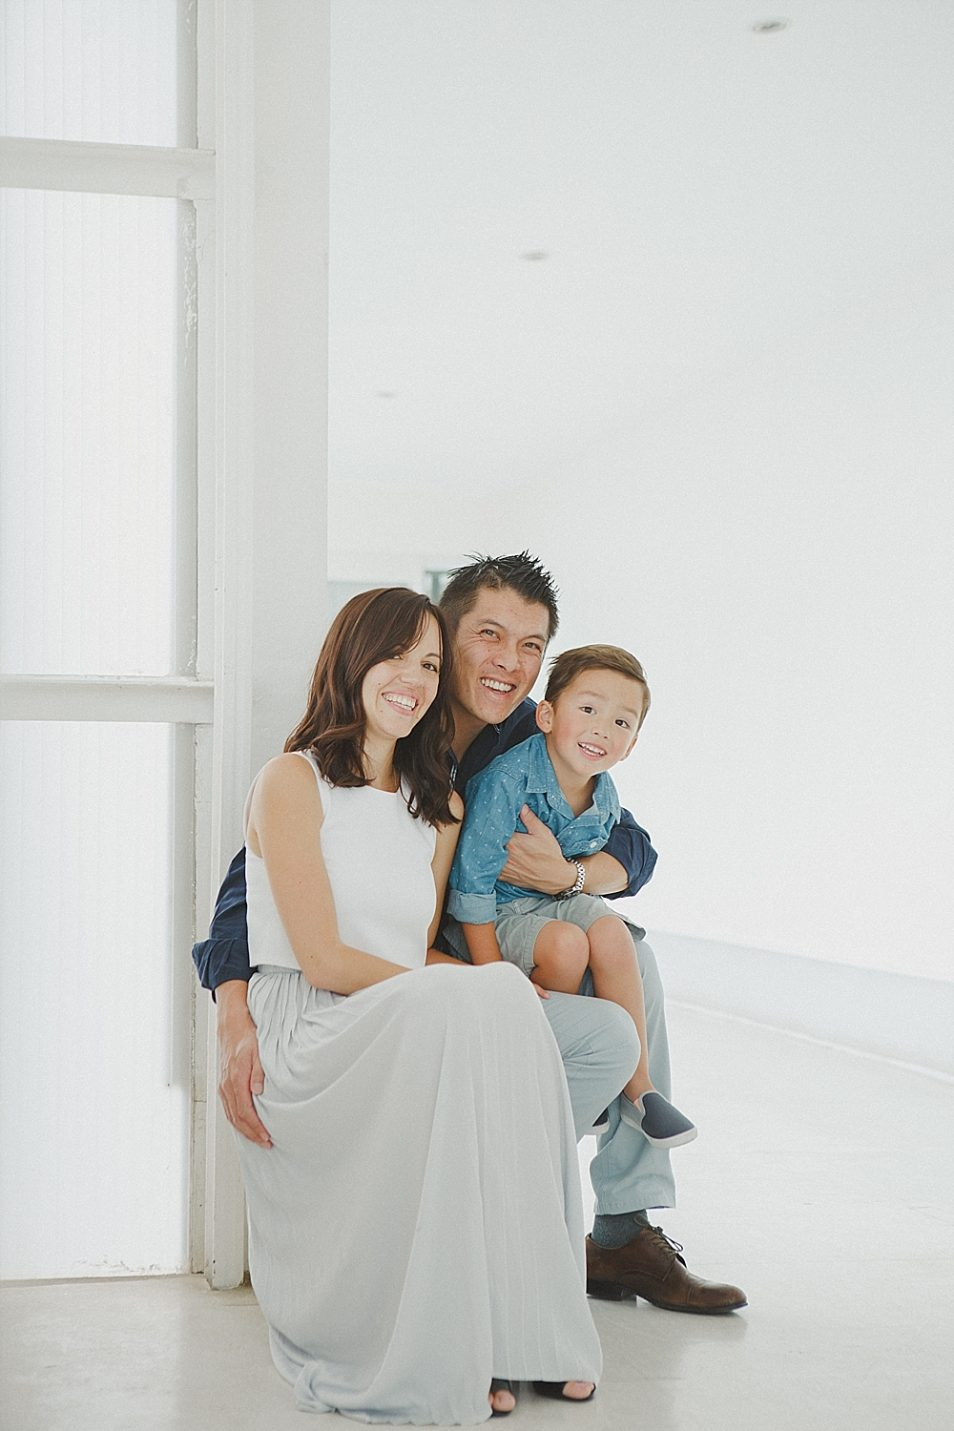 beautiful family photos at Shine Studios in Johannesburg South Africa